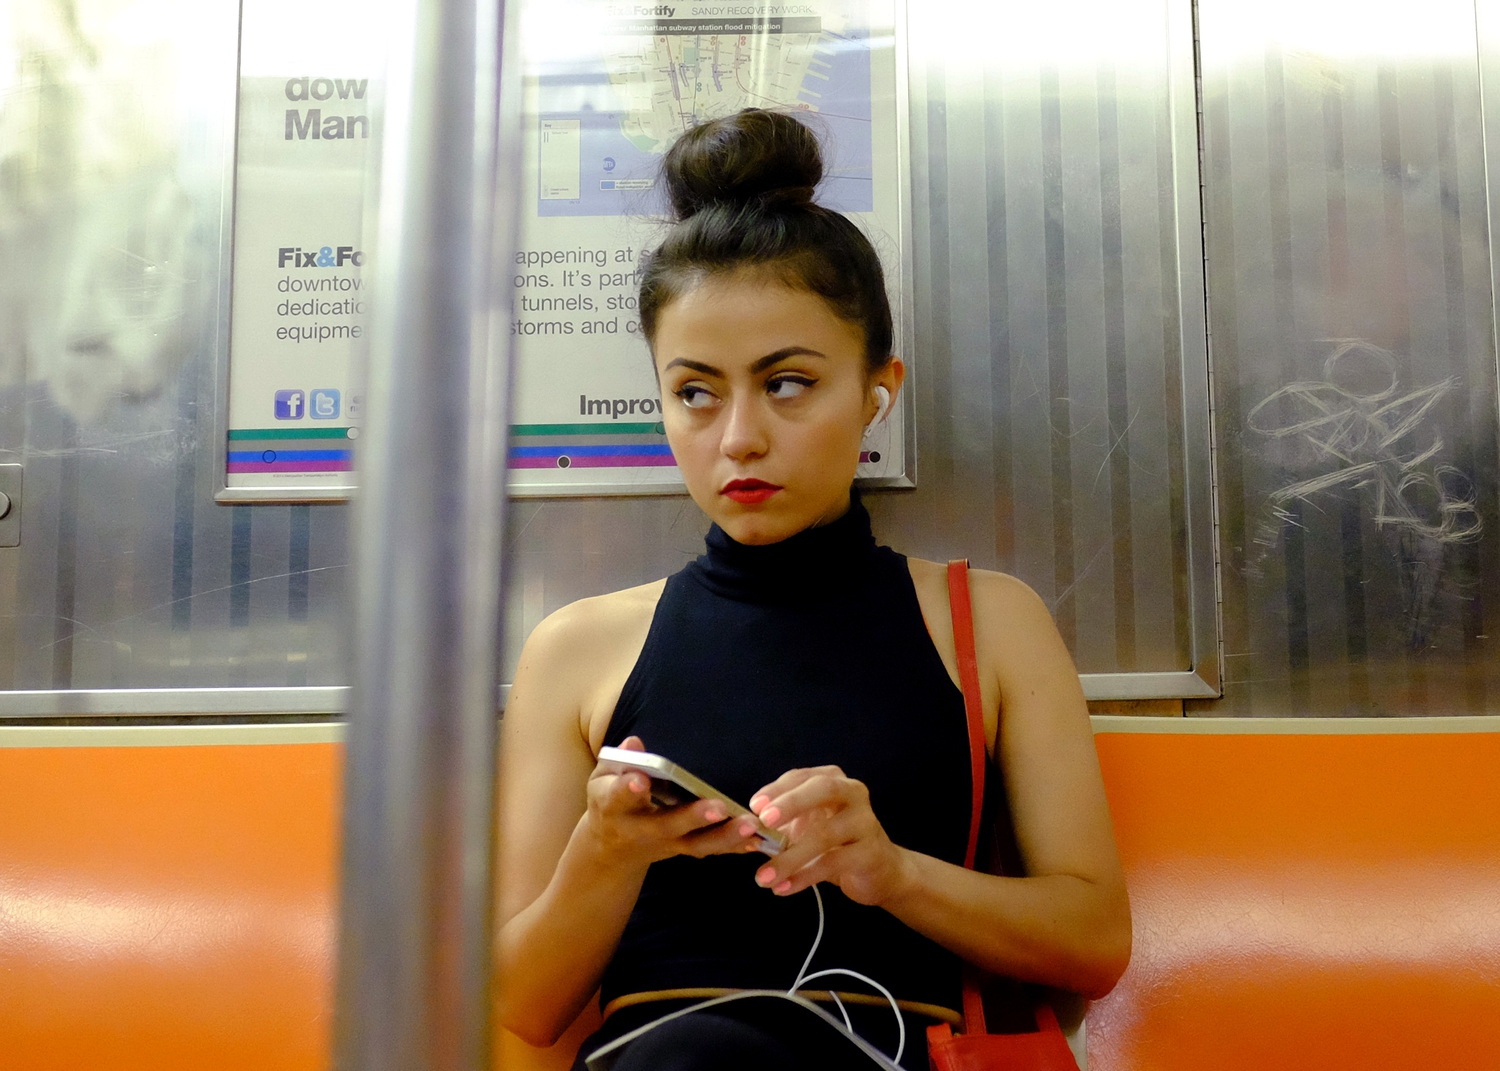 New York Street Scenes | July 10, 2014  Woman on the B train.